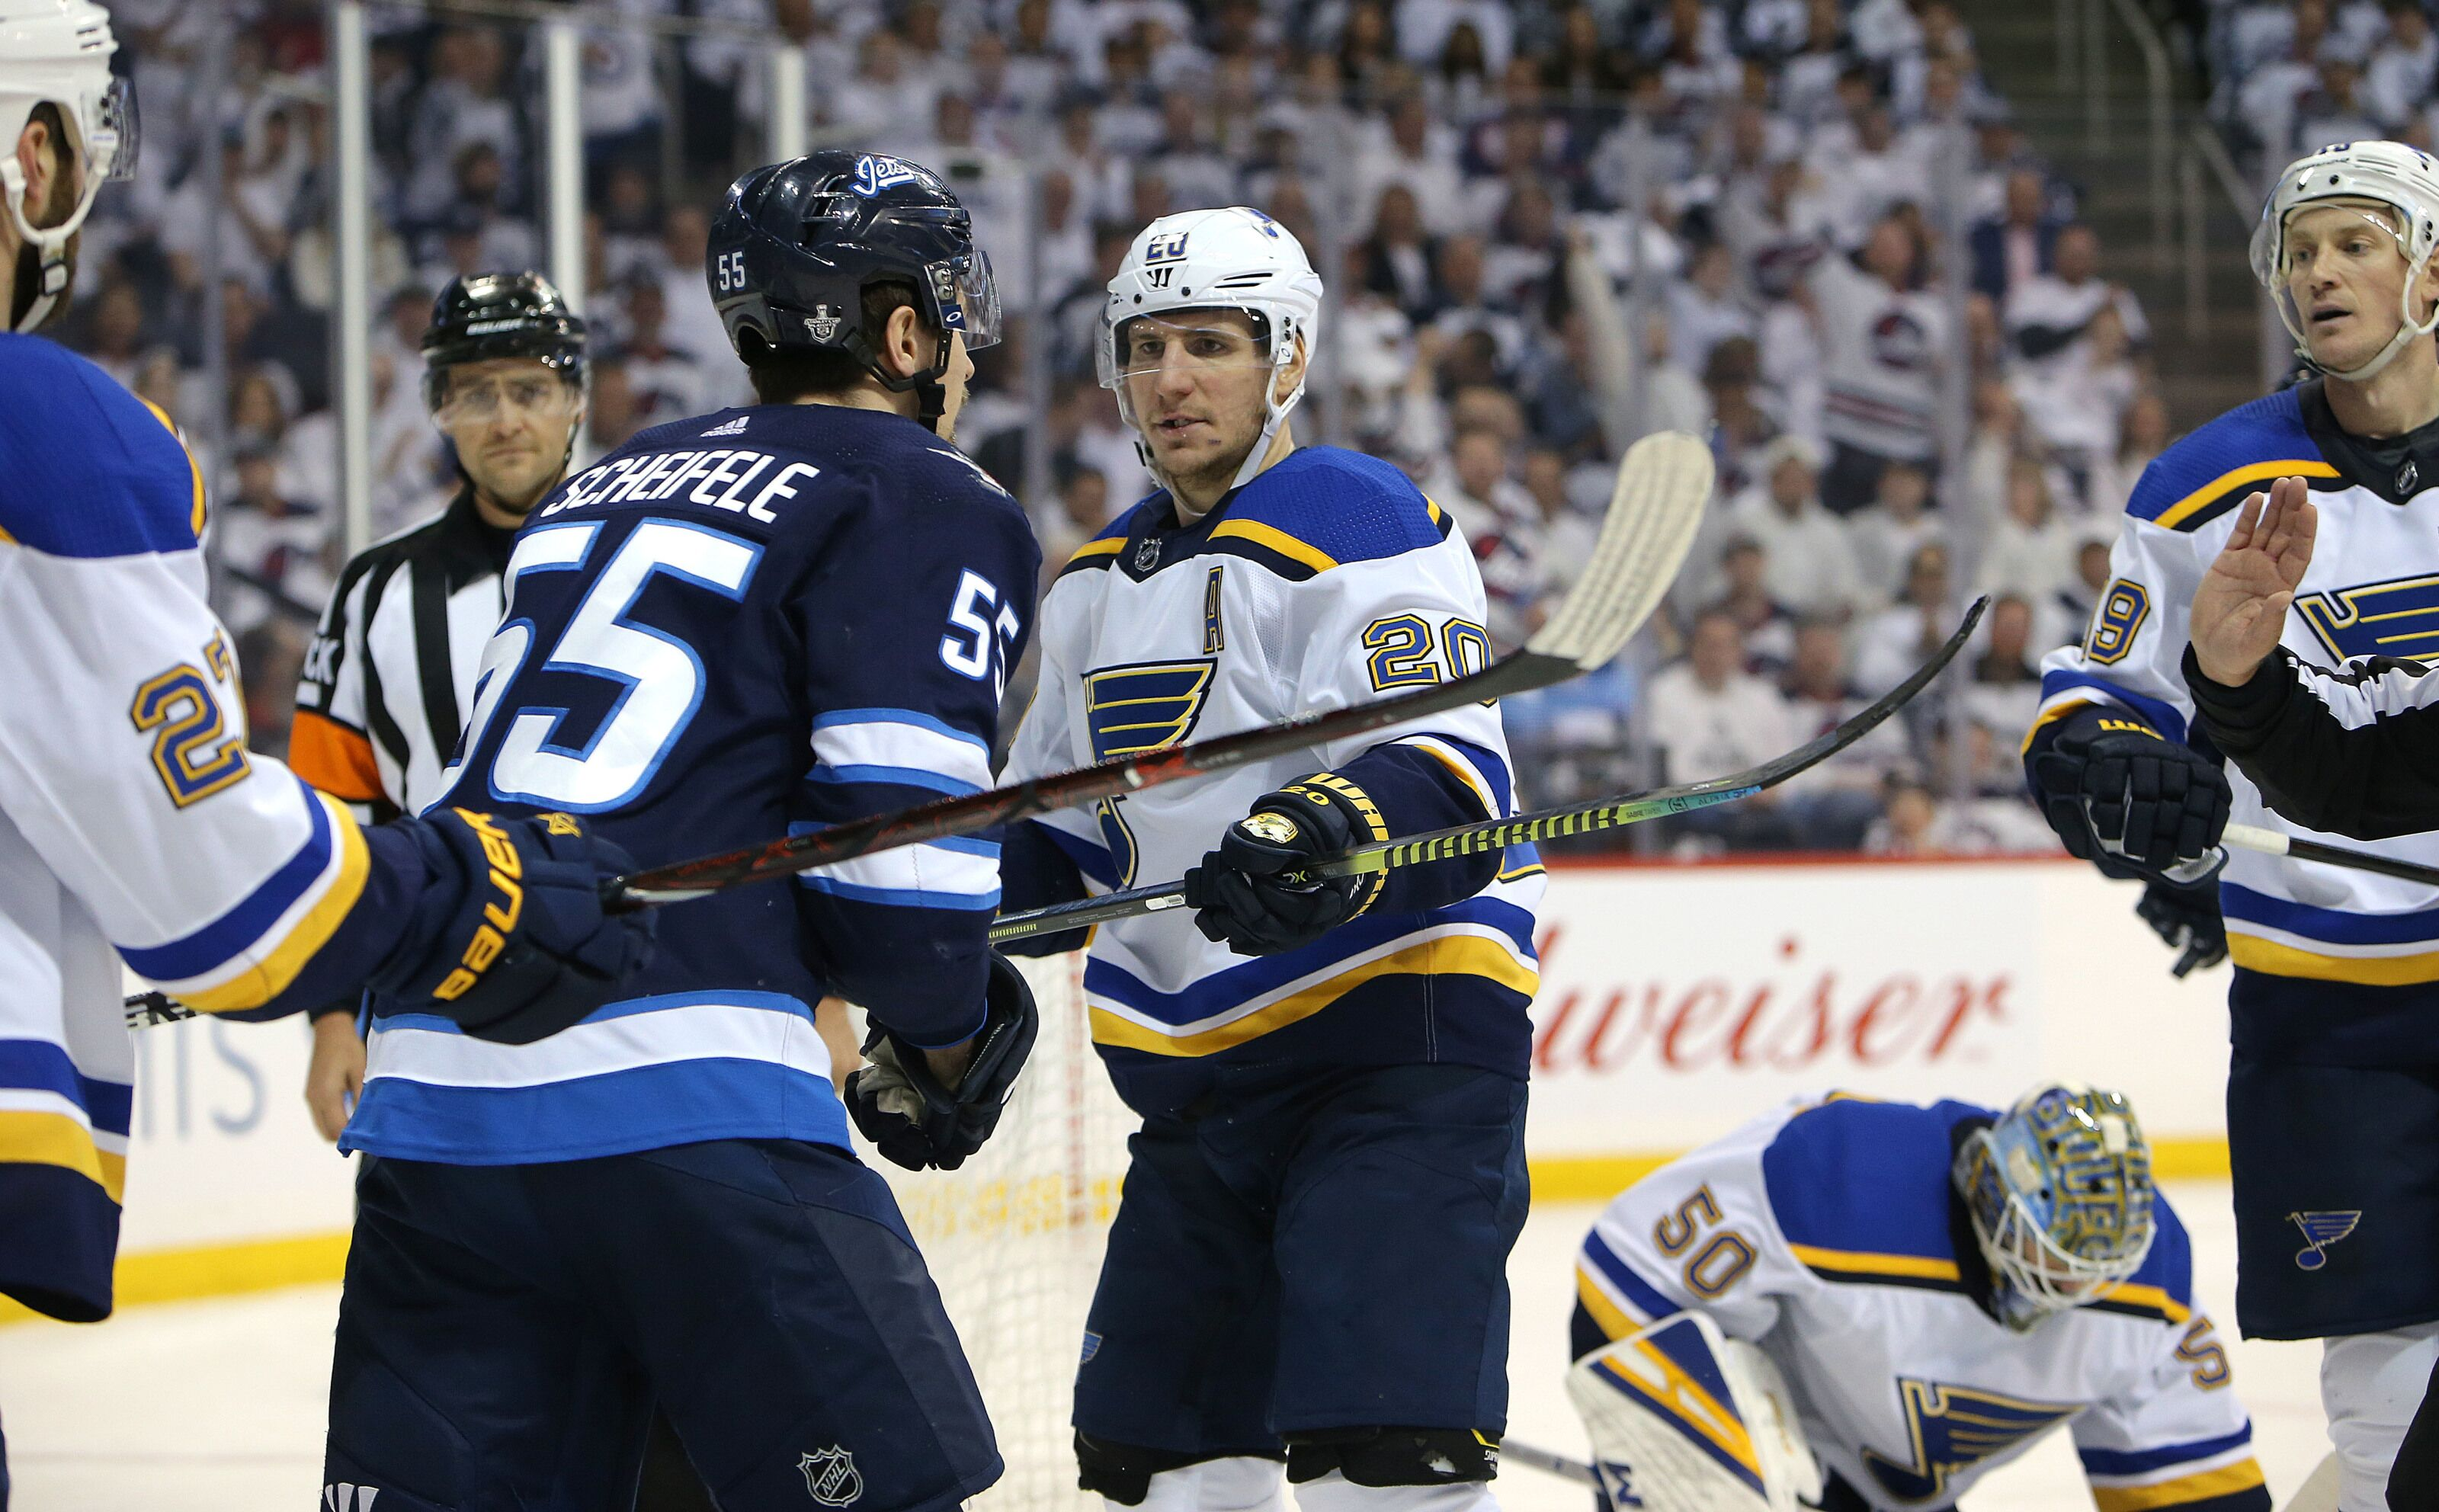 St. Louis Blues Series With Winnipeg Jets Makes No Sense